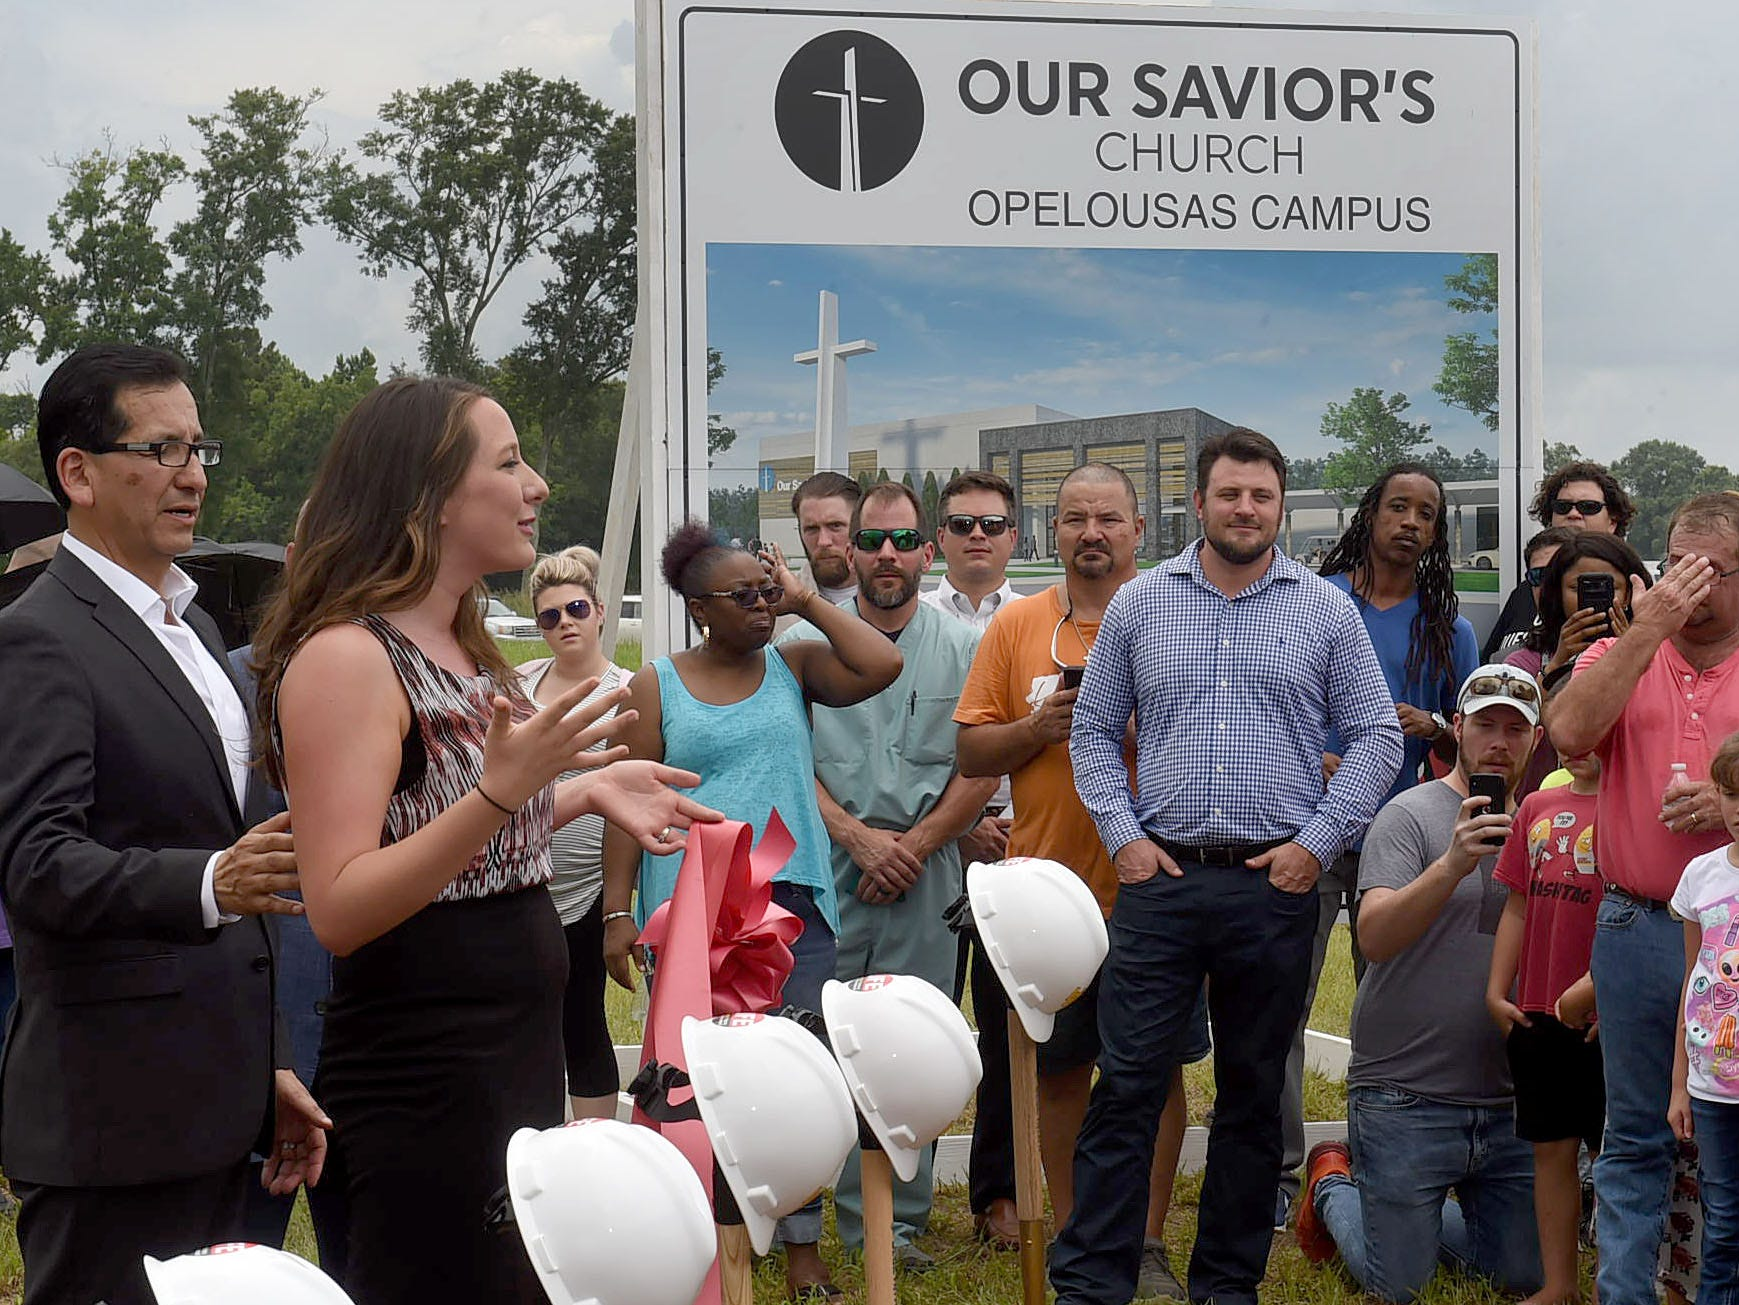 Our Savior's Church, Opelousas Campus made news with the groundbreaking for a new church located on Interstate 49 just south of Opelousas.